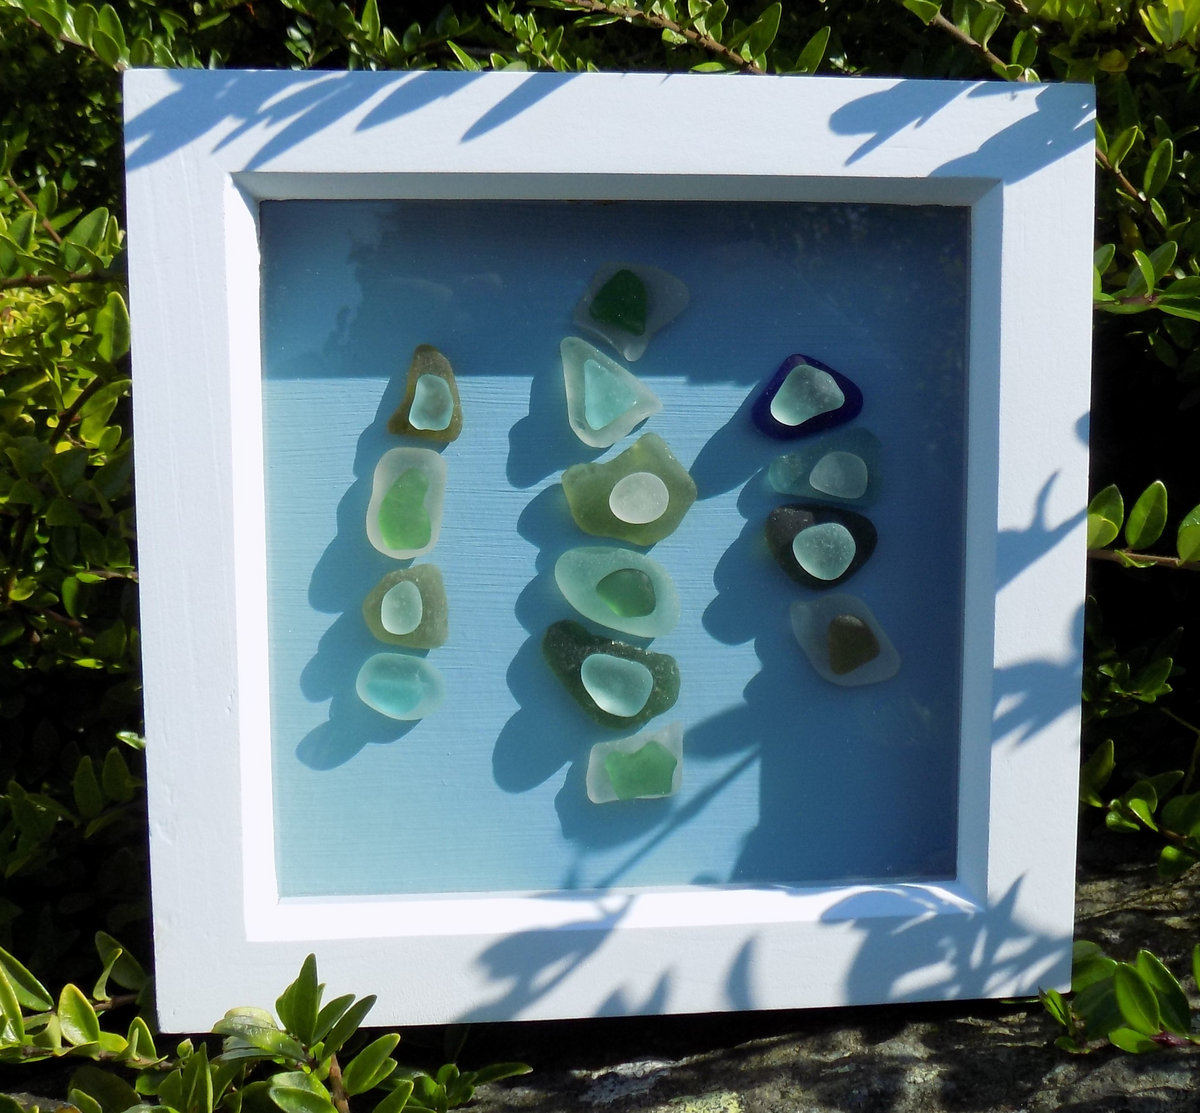 Unique Framed Sea Glass Artwork and Sea Glass Inspired Track ...